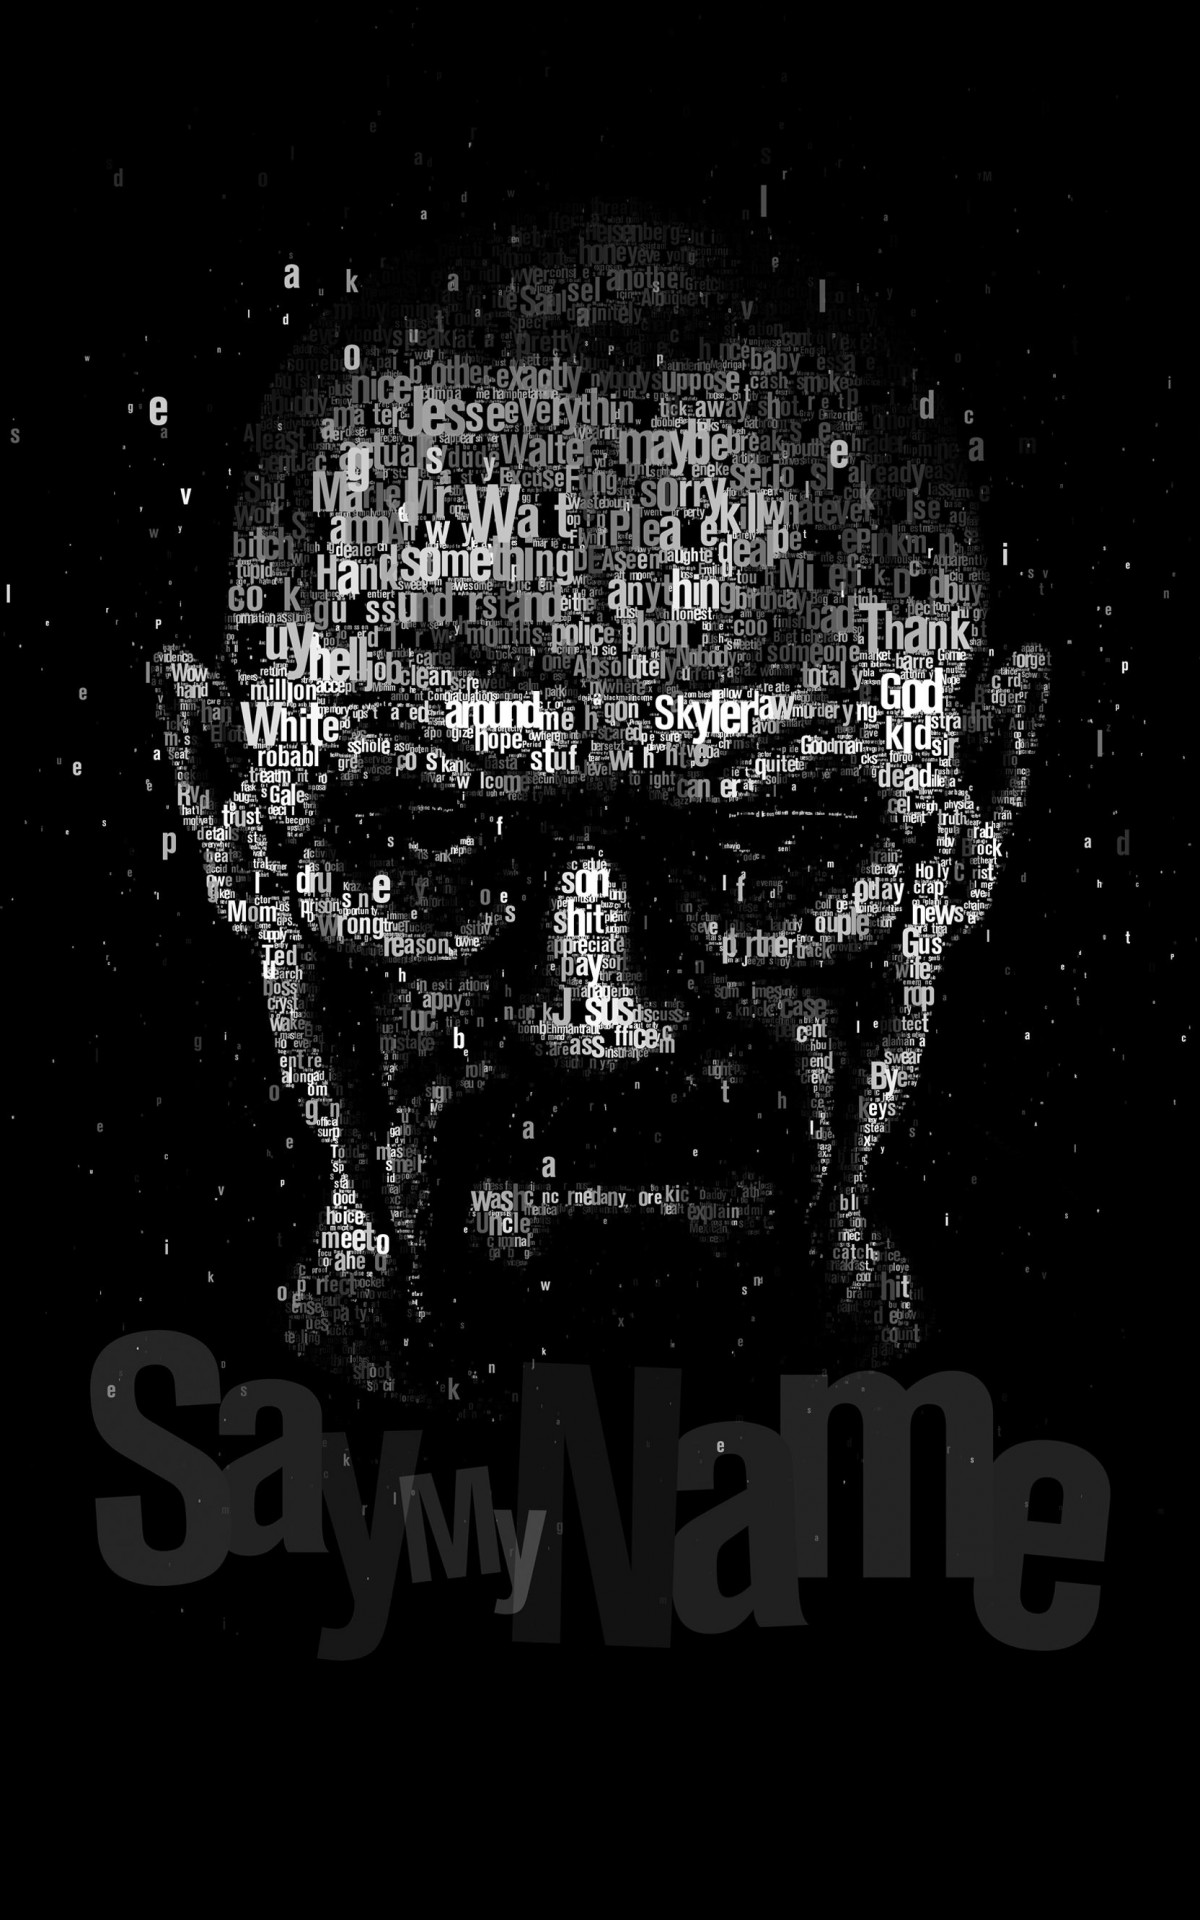 Say My Name - Typography Art Wallpaper for Amazon Kindle Fire HDX